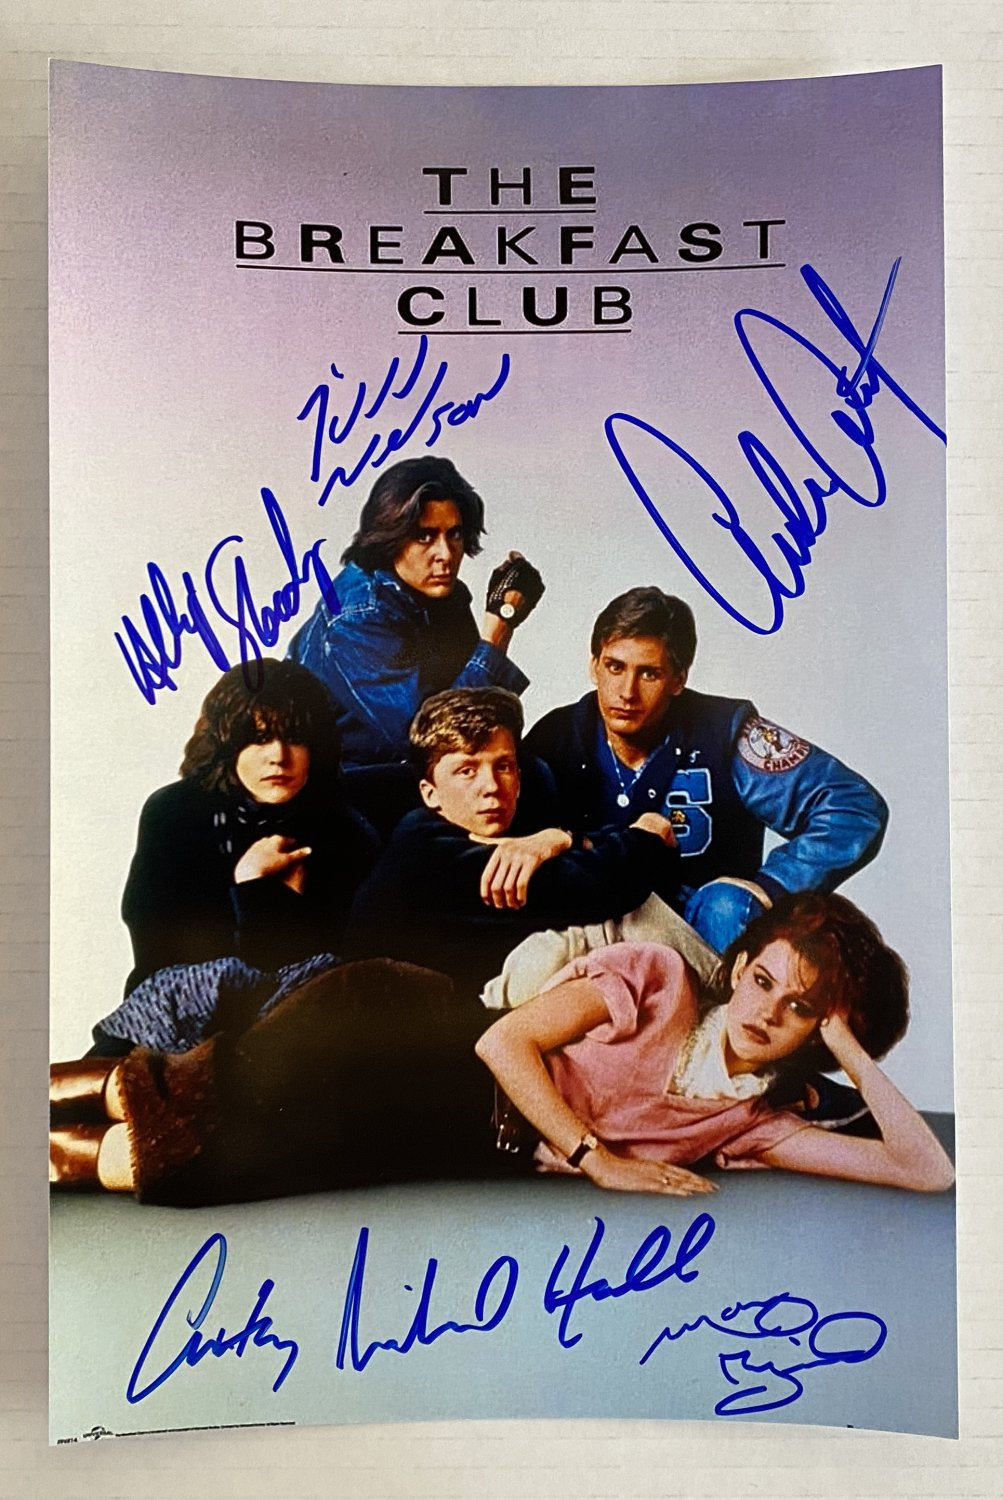 The Breakfast Club cast signed autographed 8x12 photo Judd Nelson autographs